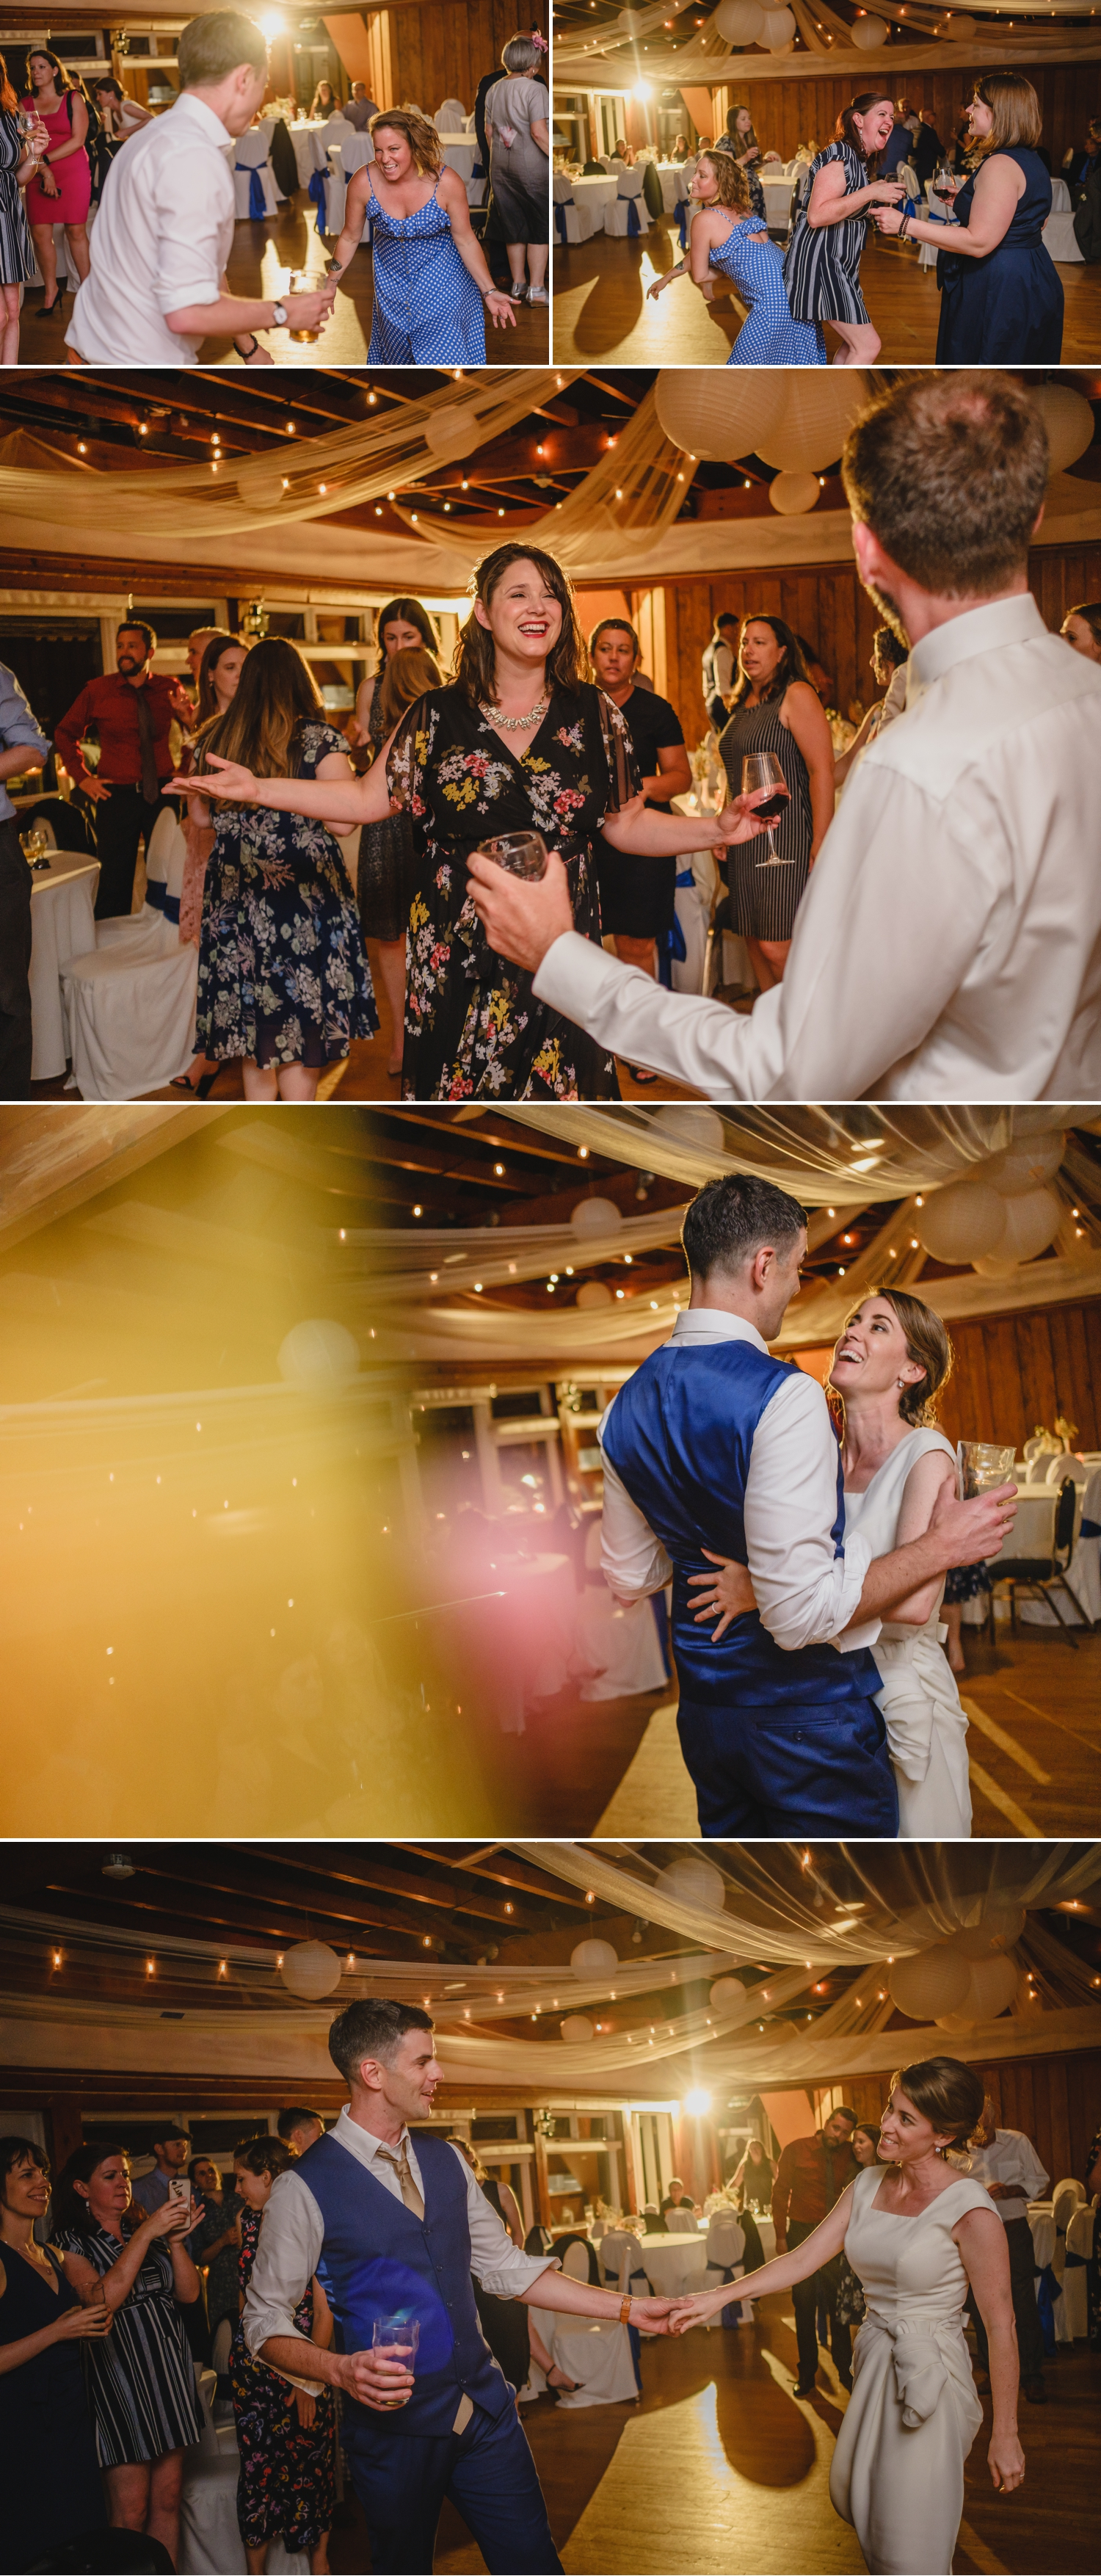 candid dance floor moments during a wedding reception at the britannia yacht club in ottawa ontario